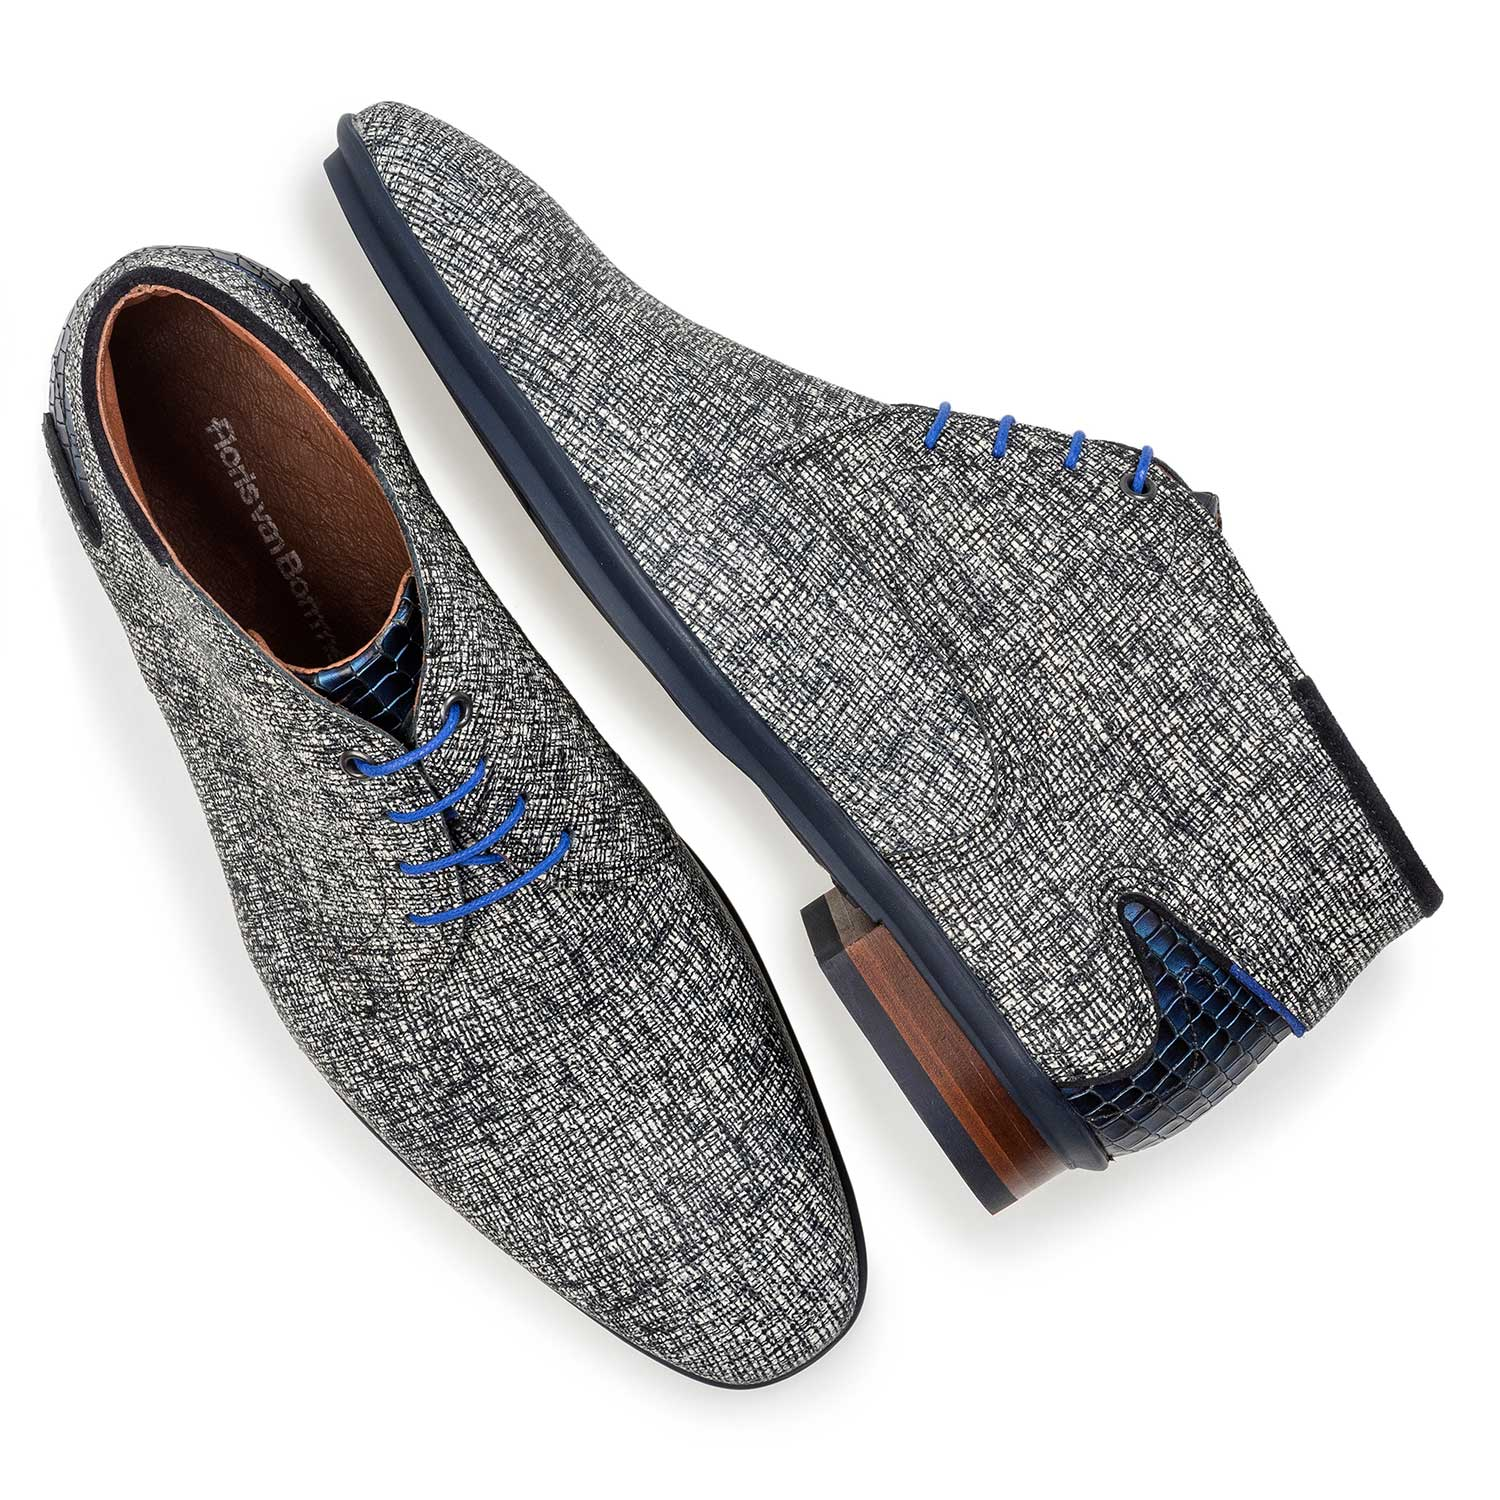 10131/18 - Grey leather lace shoe with print